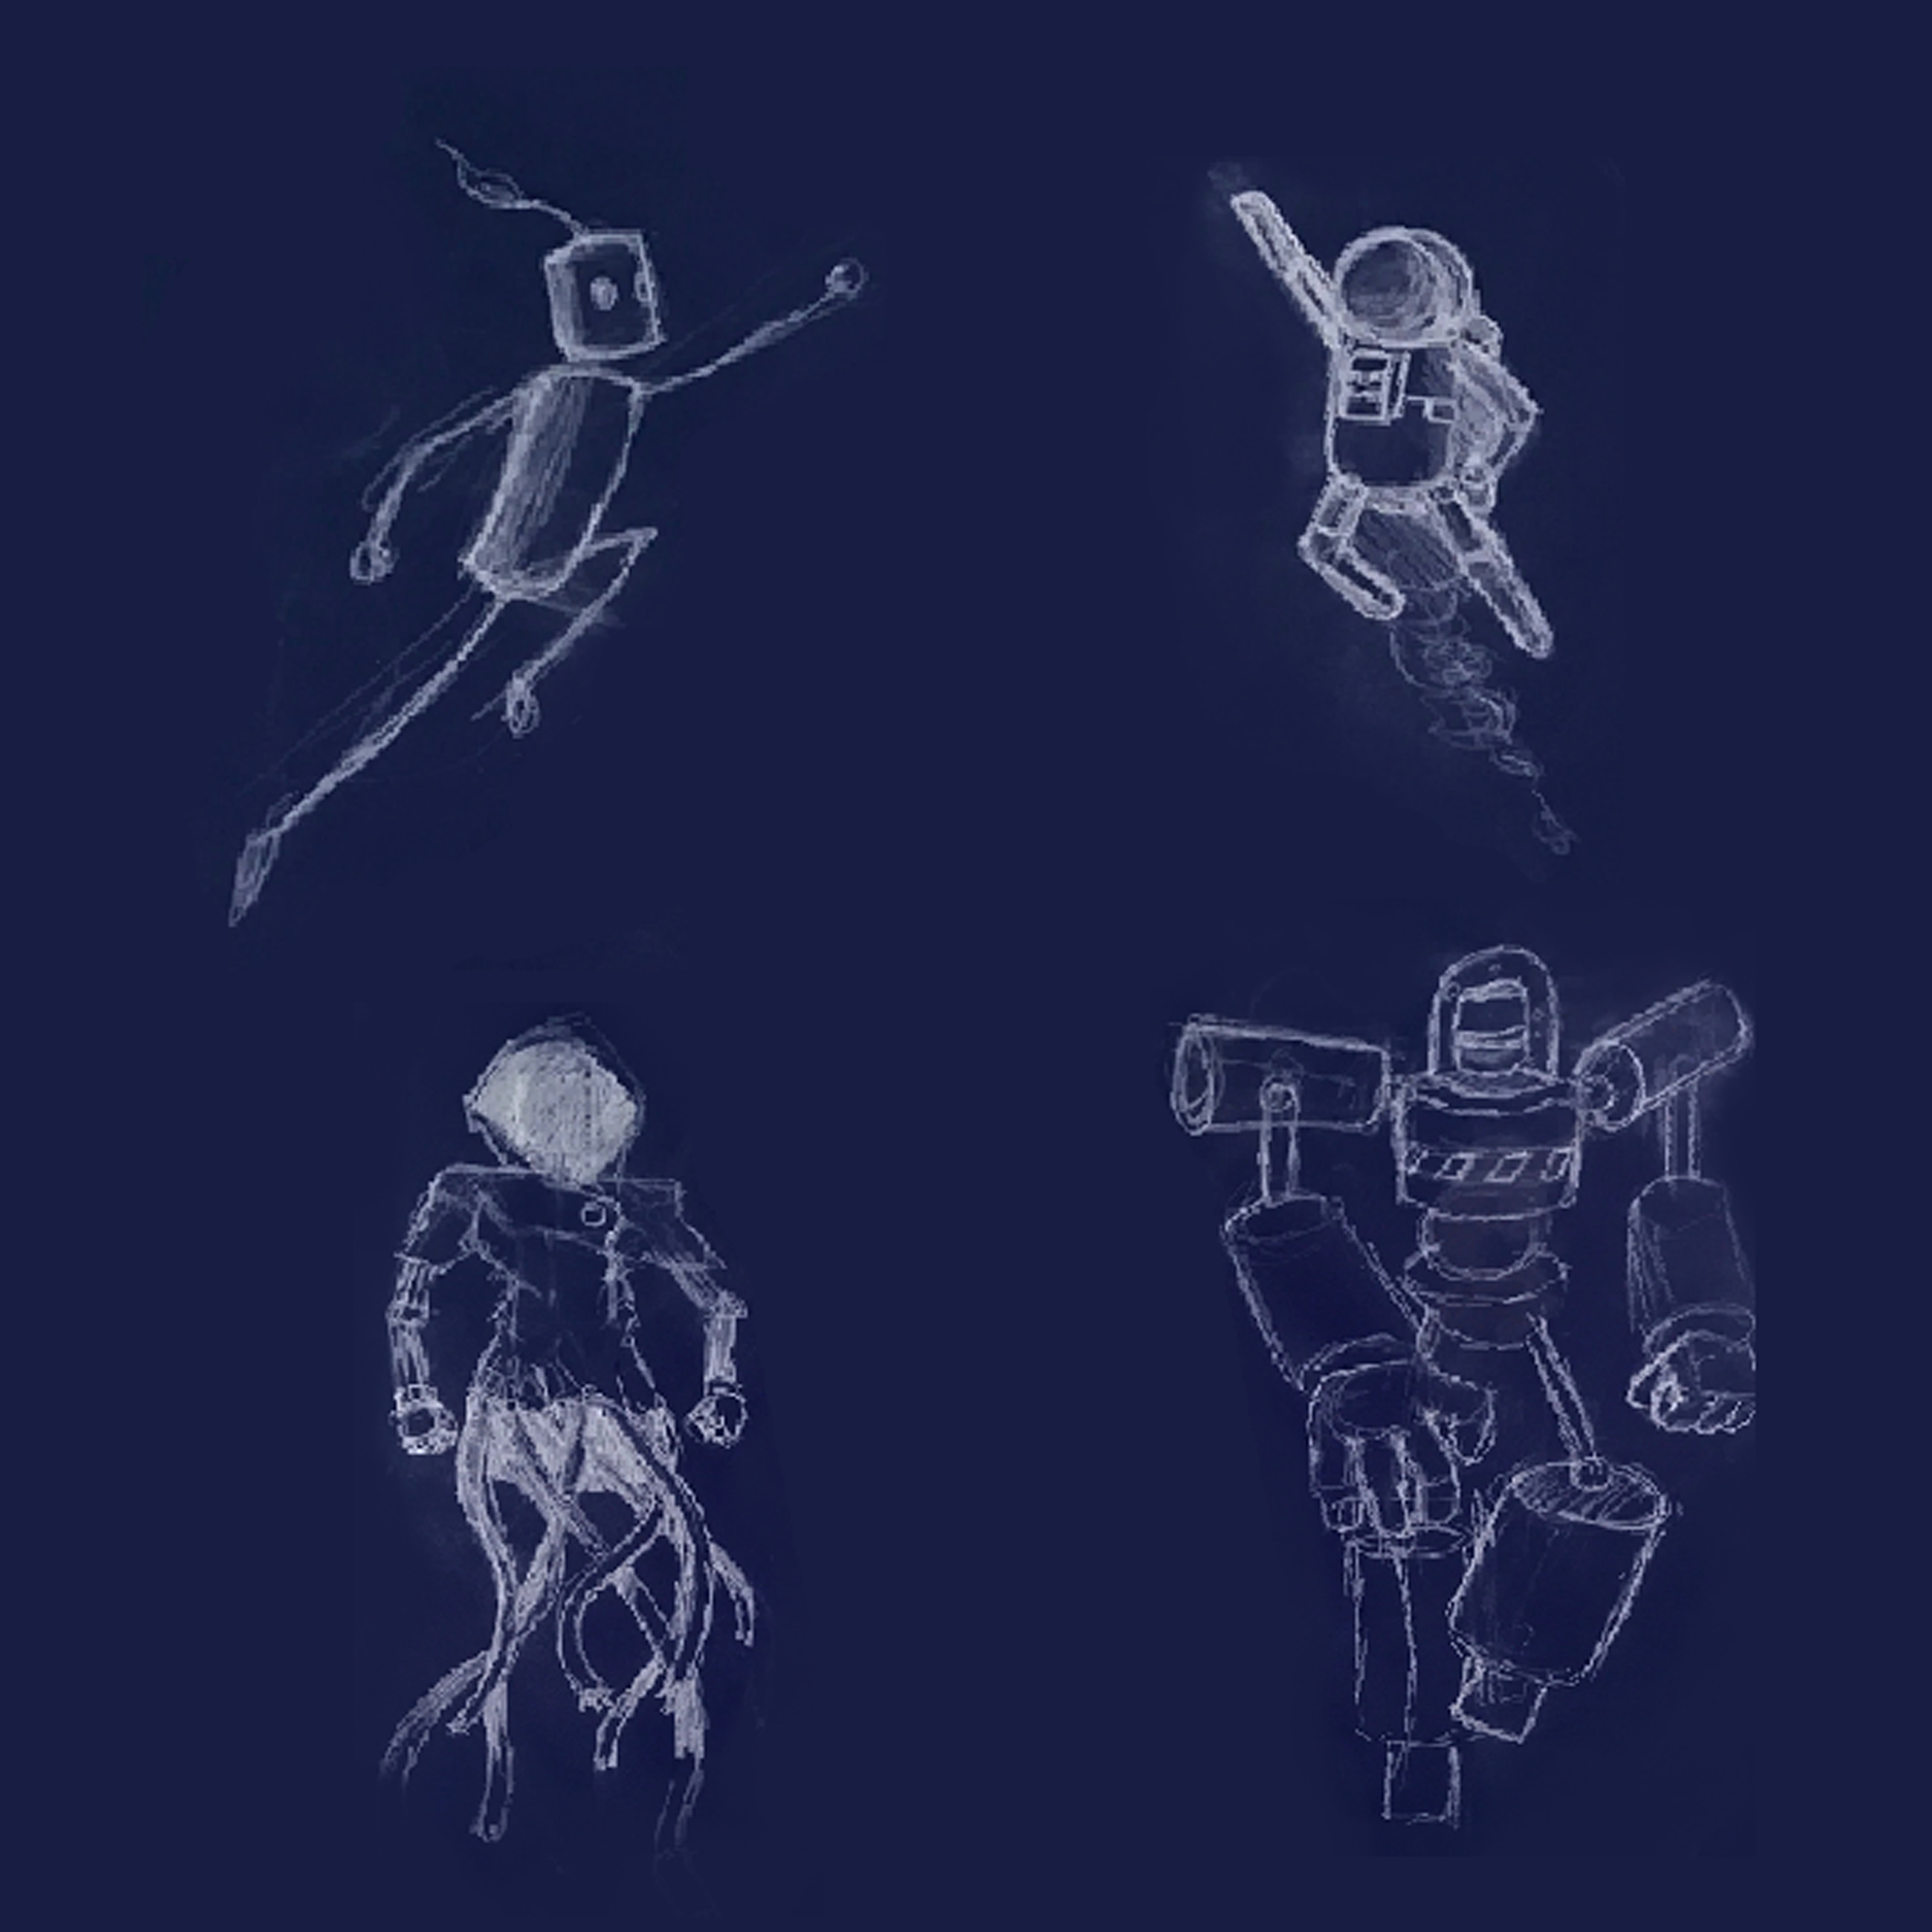 Kick Bot DX character concept art sketches